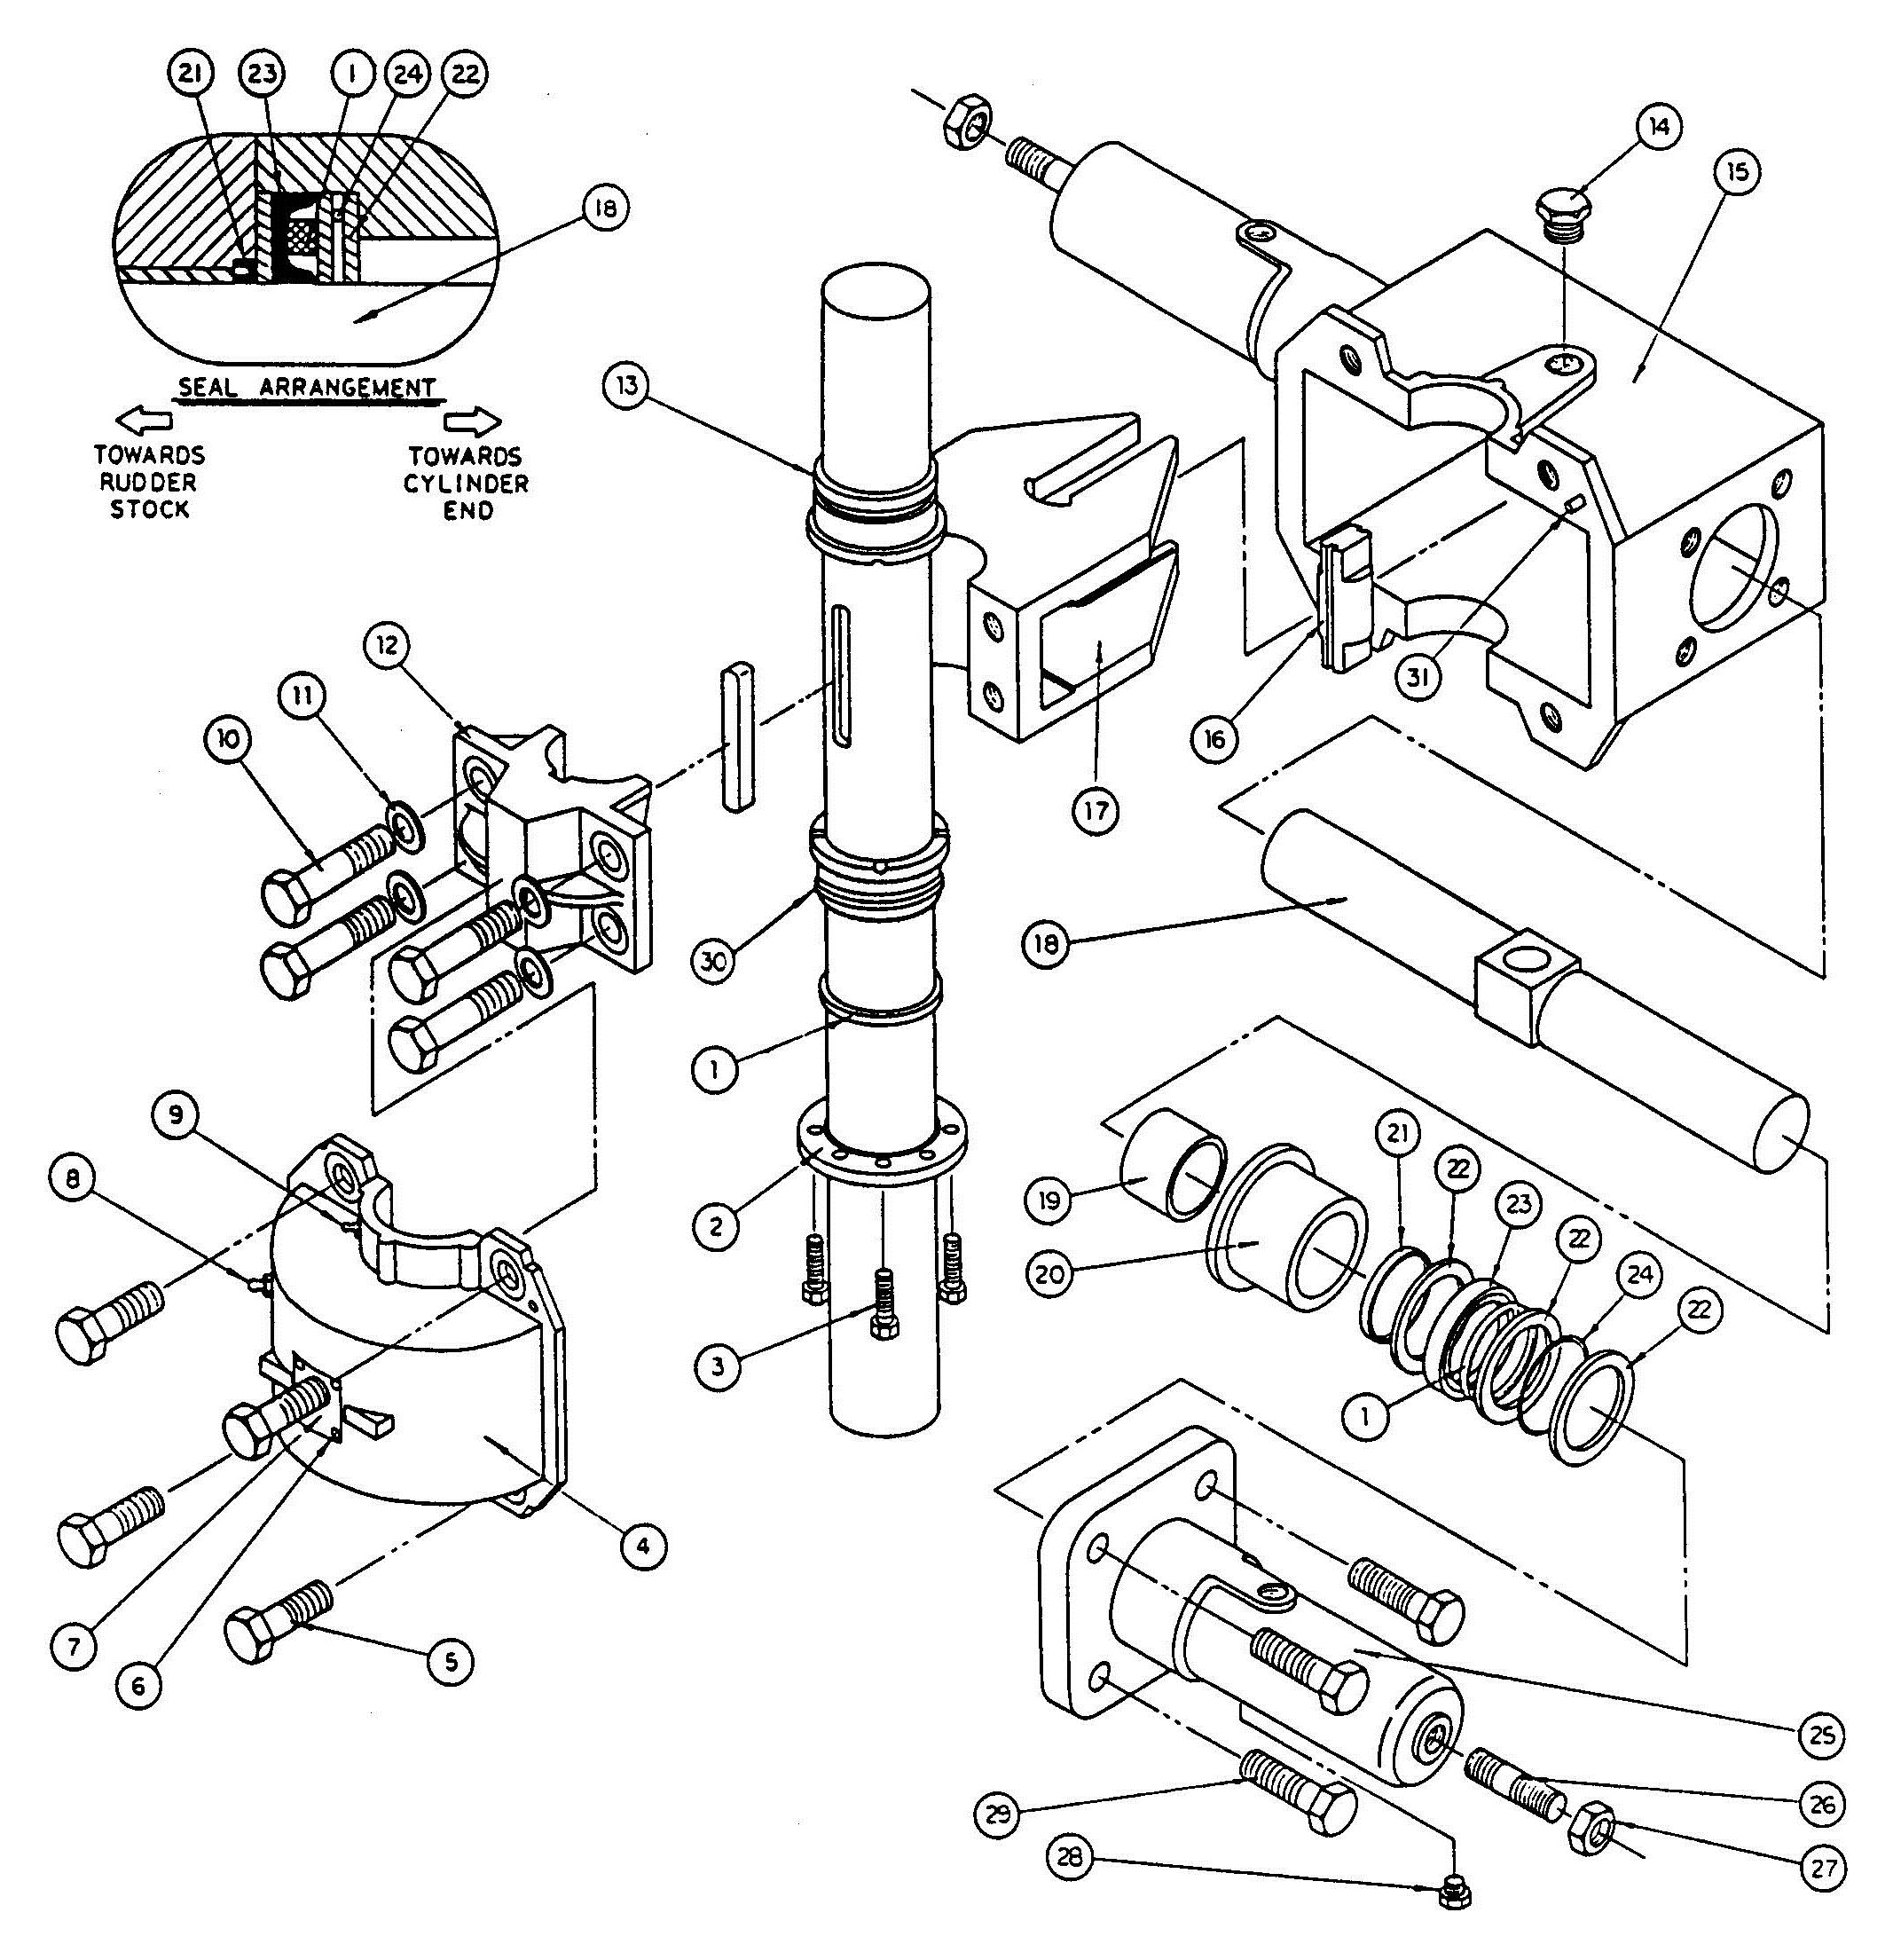 Model T5 Actuator Assembly Diagram